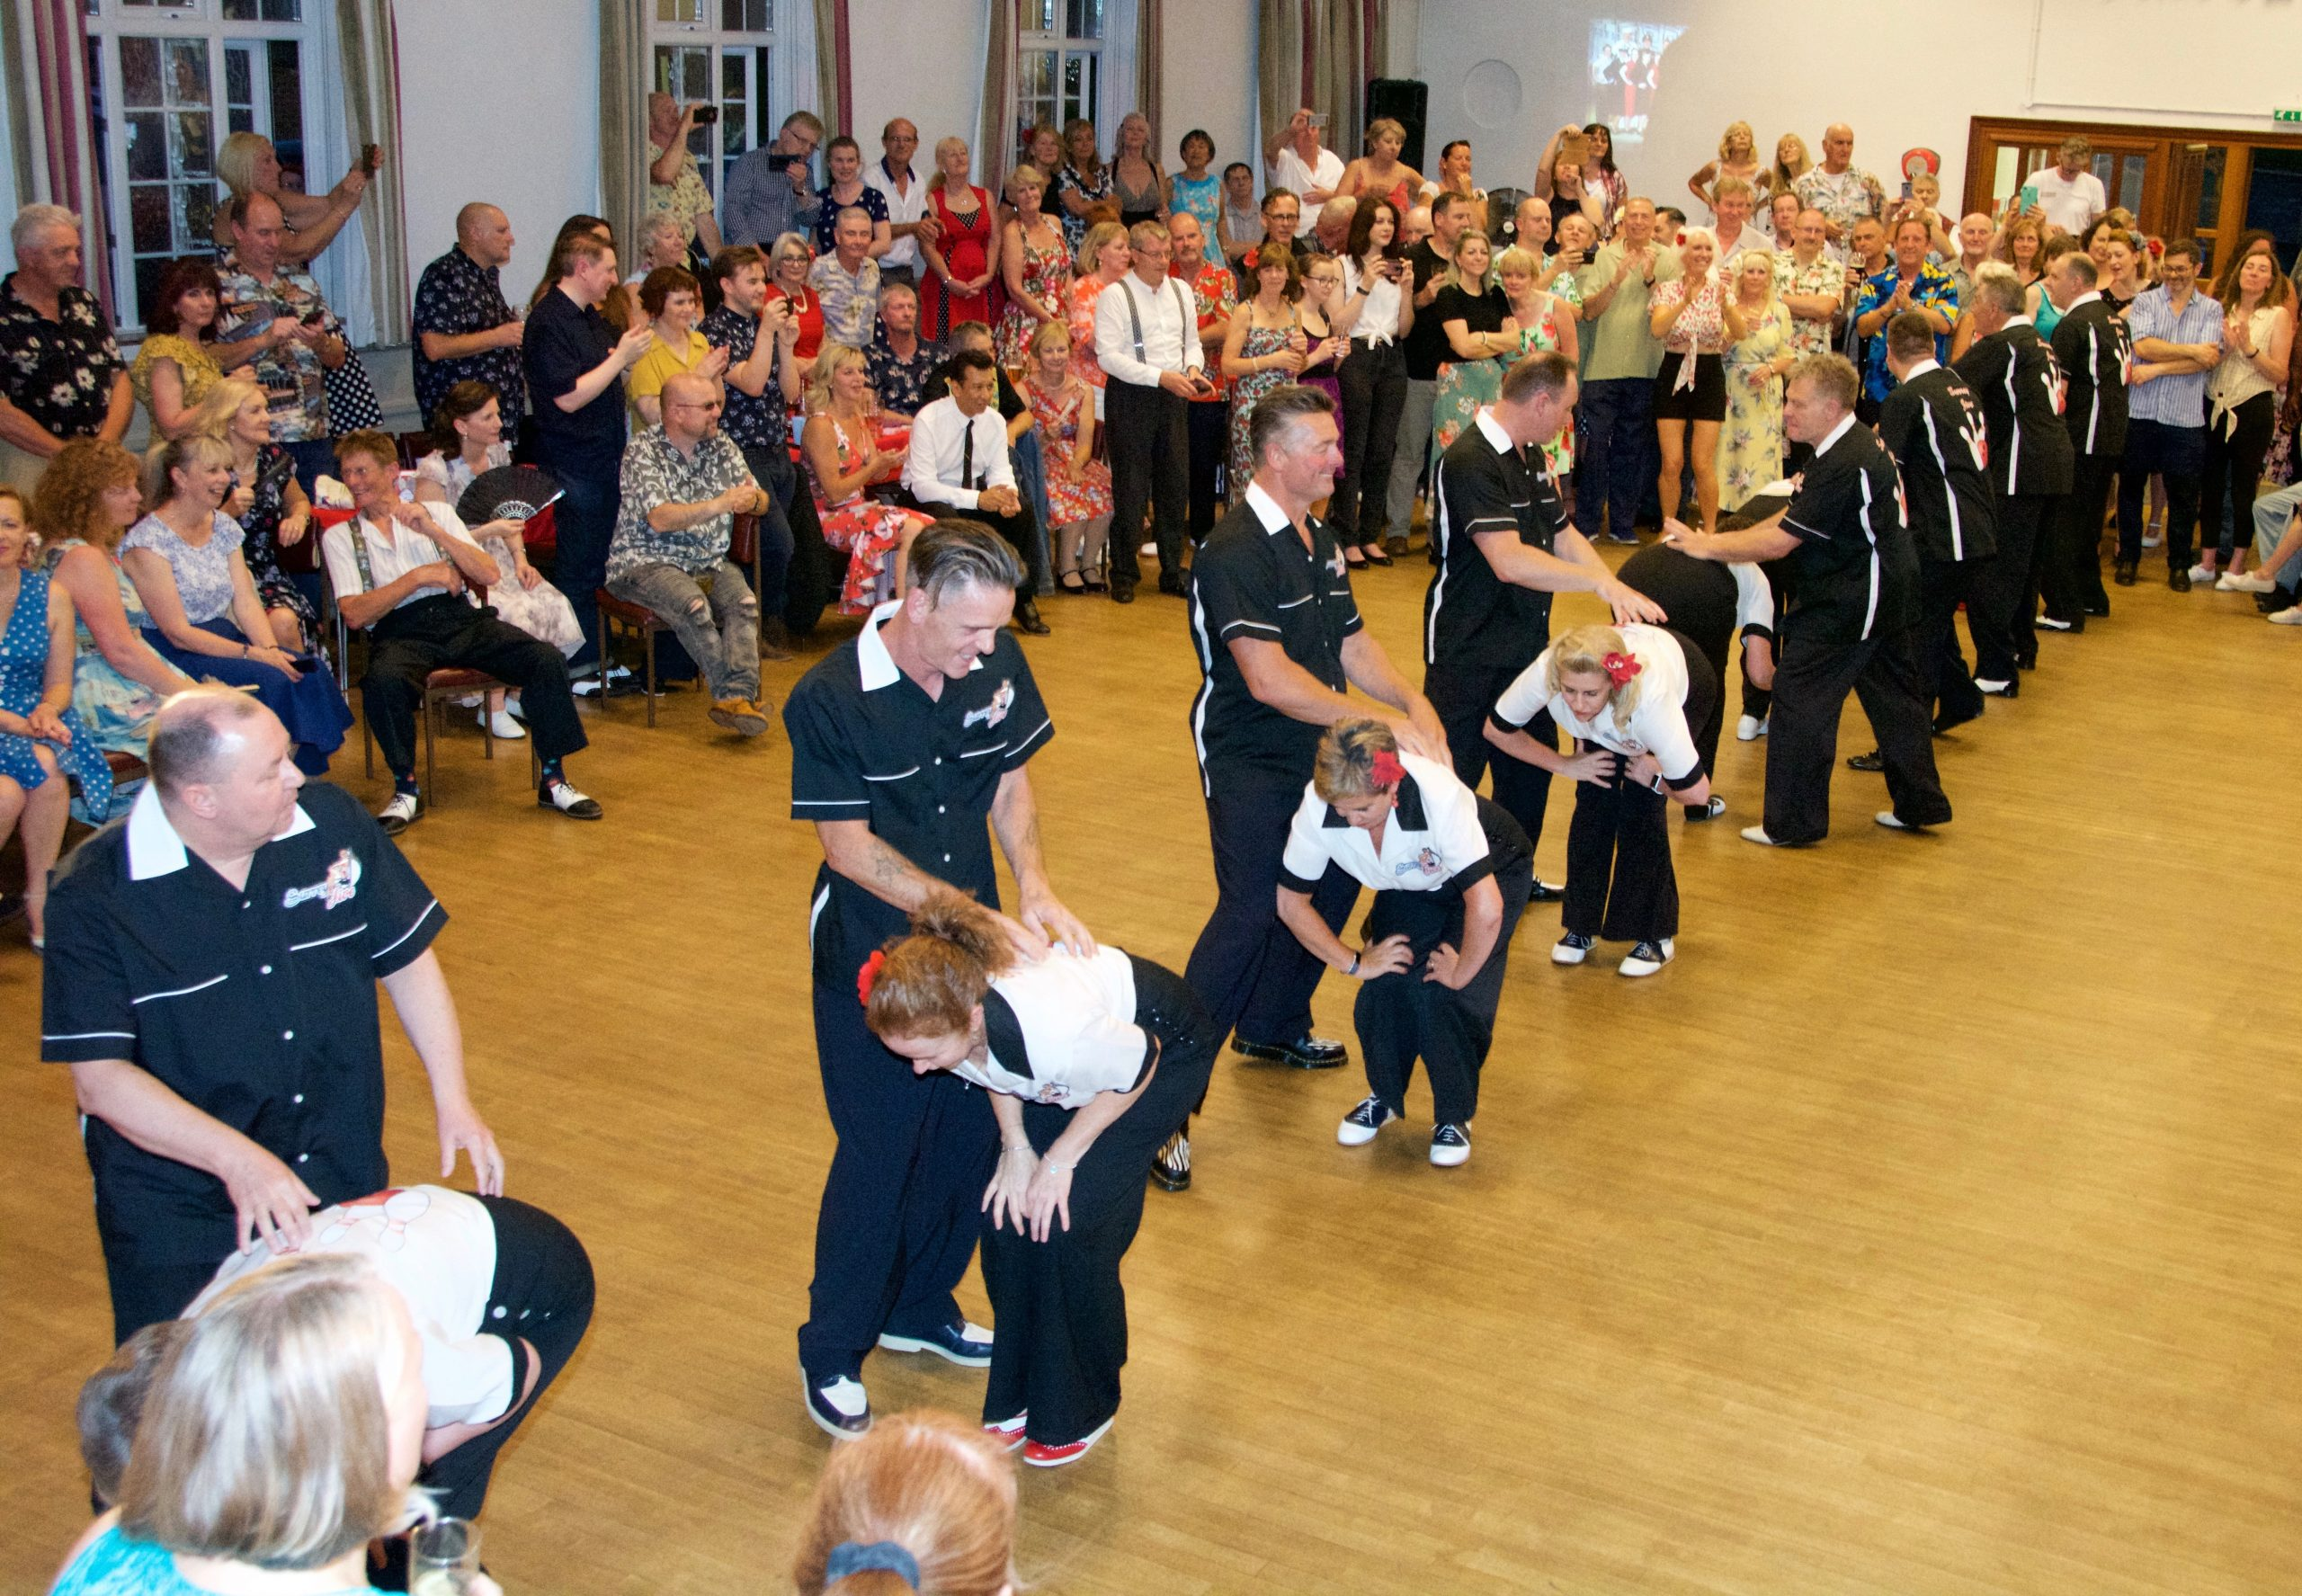 jive dancers in formation demonstrating at an event with crowd watching